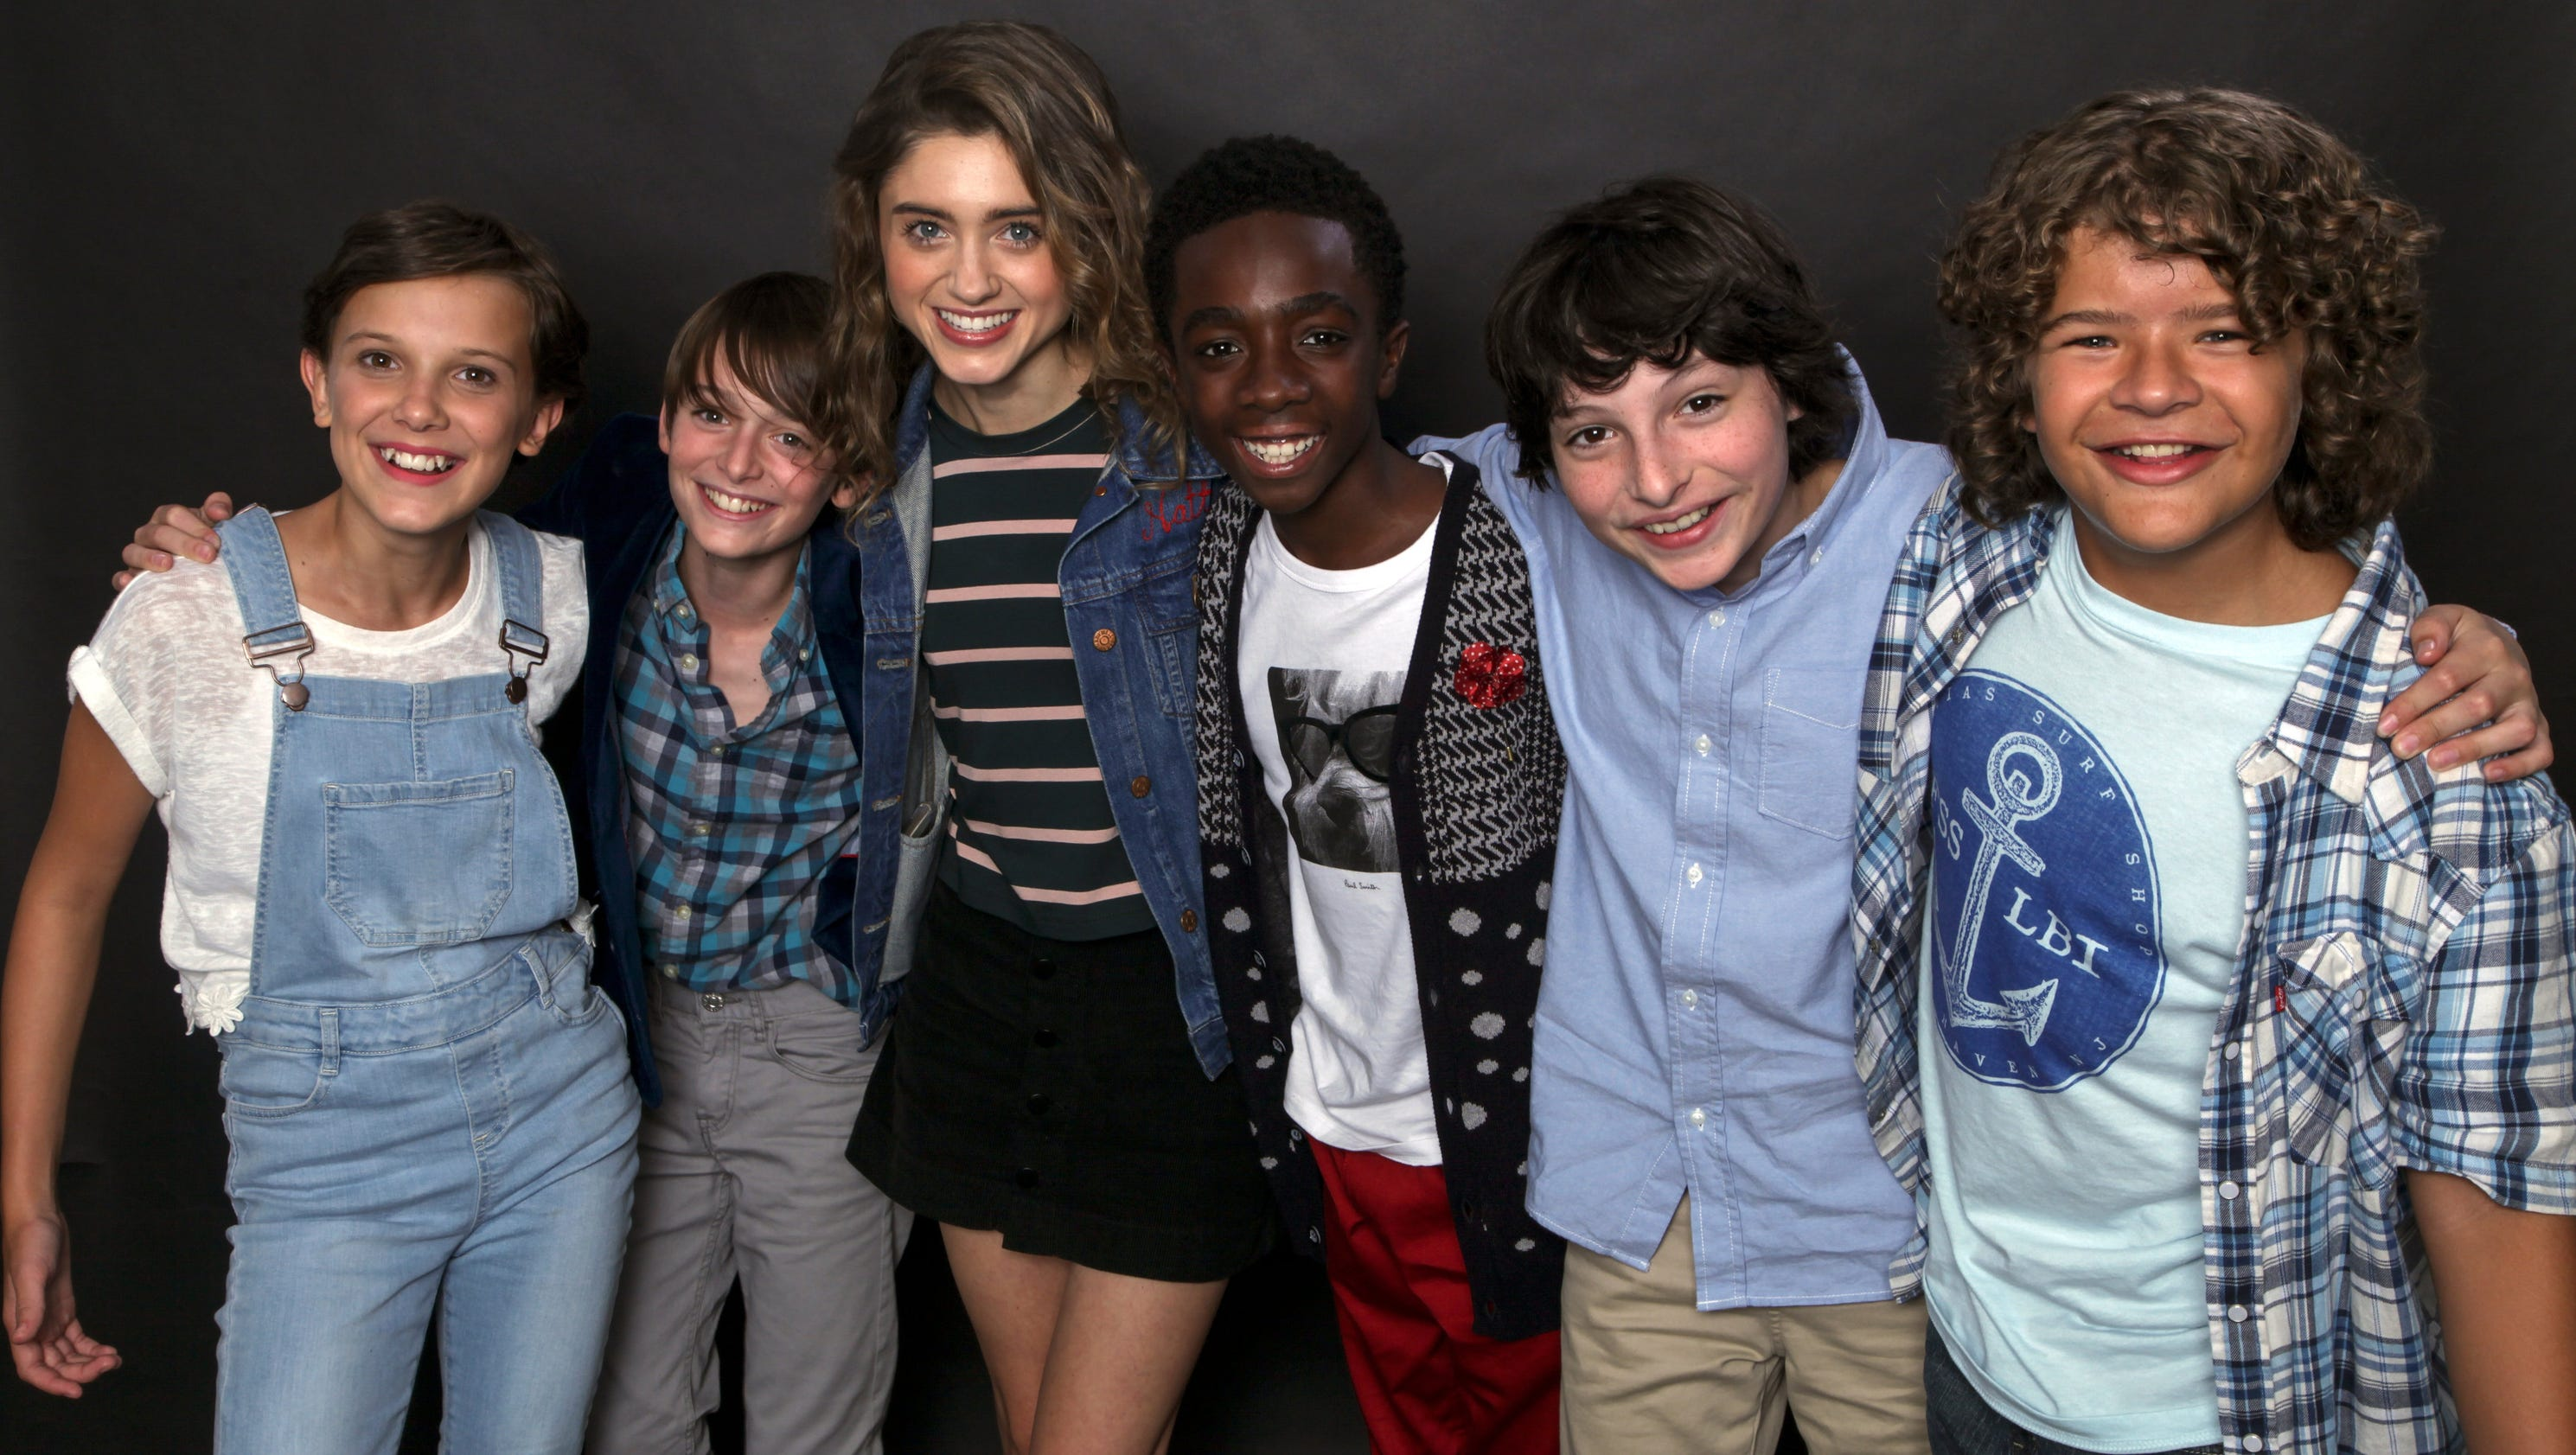 'Stranger Things' kids have some bold predictions for Season 2